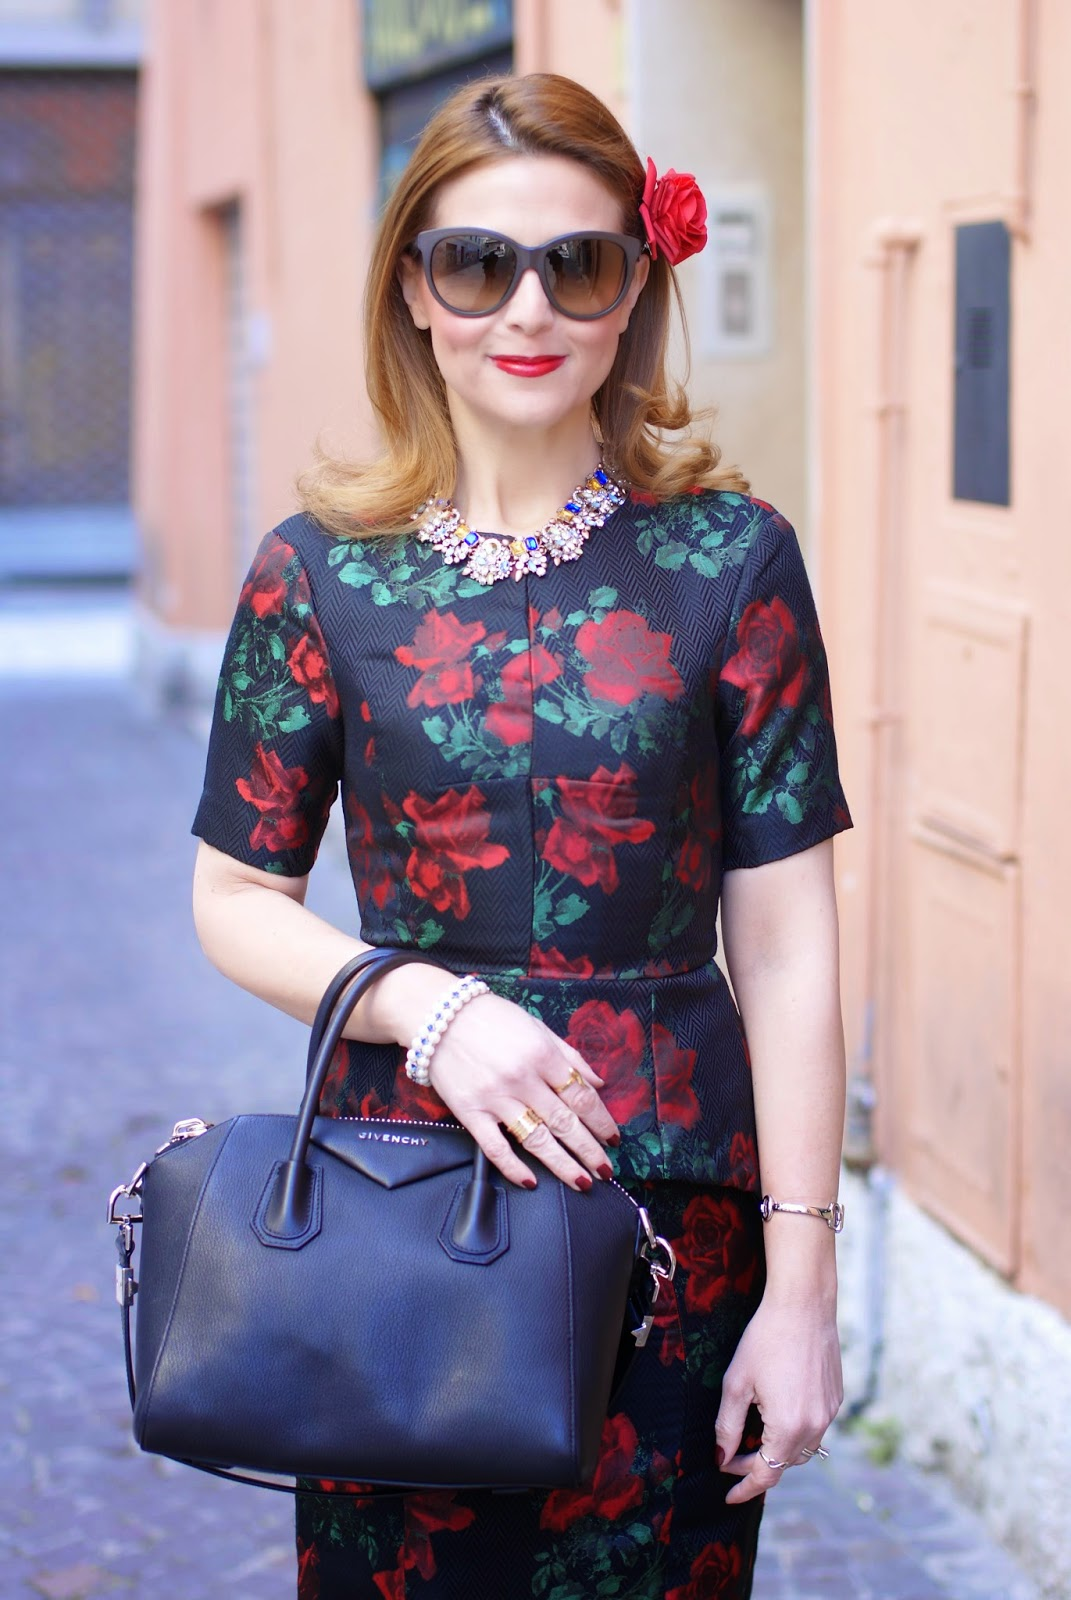 Asos rose print peplum dress in a 40s vintage style worn with tights and looking like a Dolce & Gabbana dress on Fashion and Cookies fashion blog